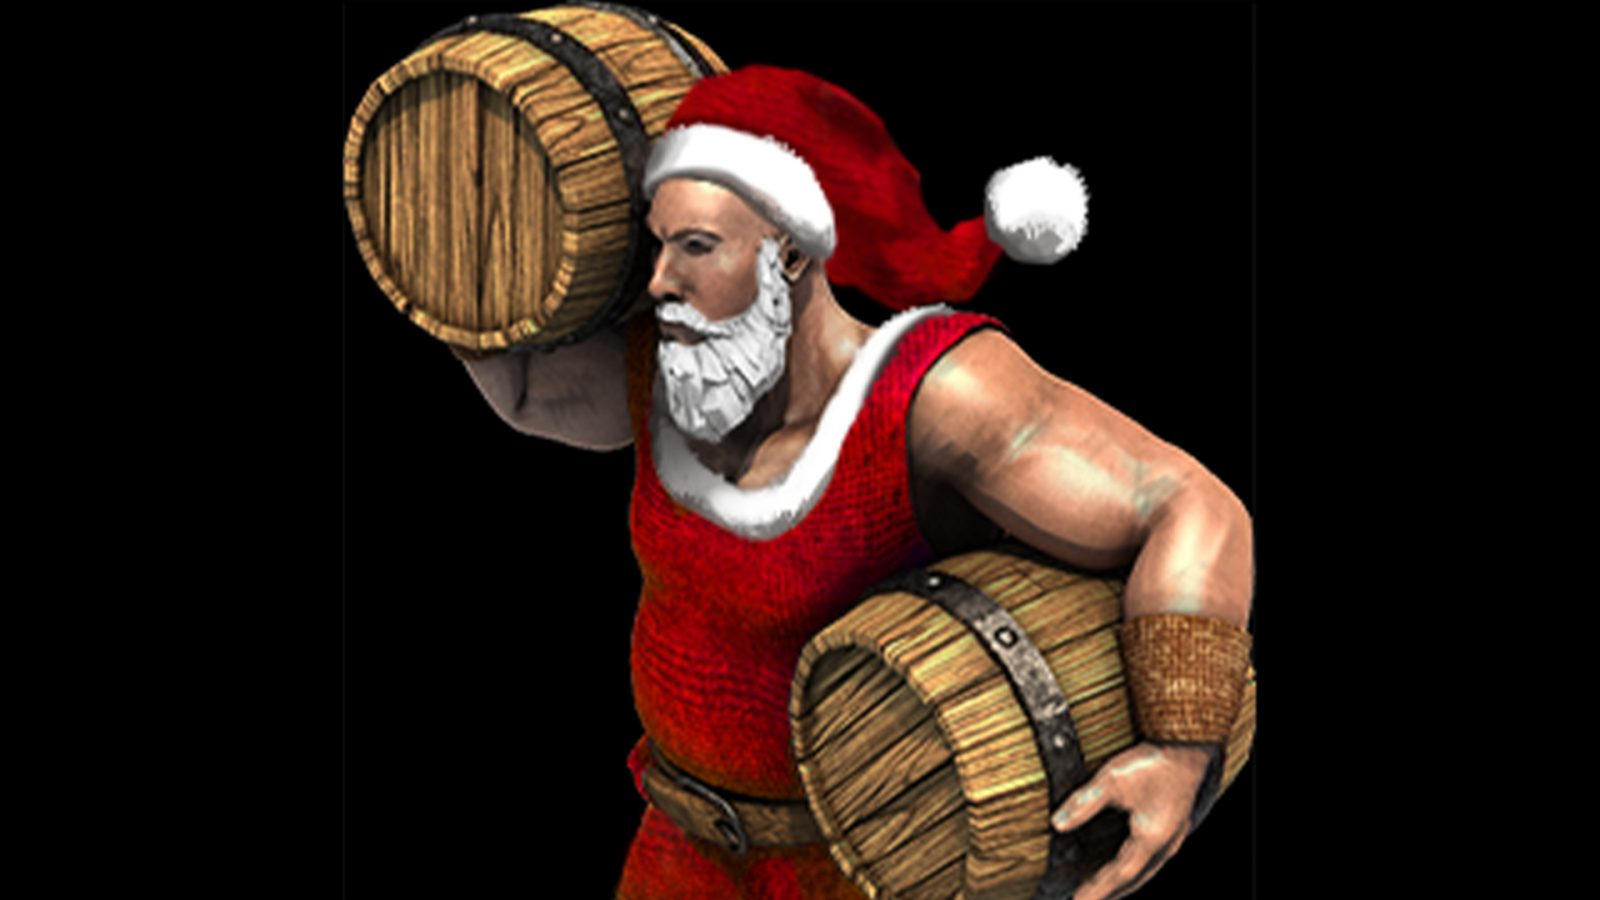 This official Age of Empires 2 mod lets you kill your enemies with Christmas presents